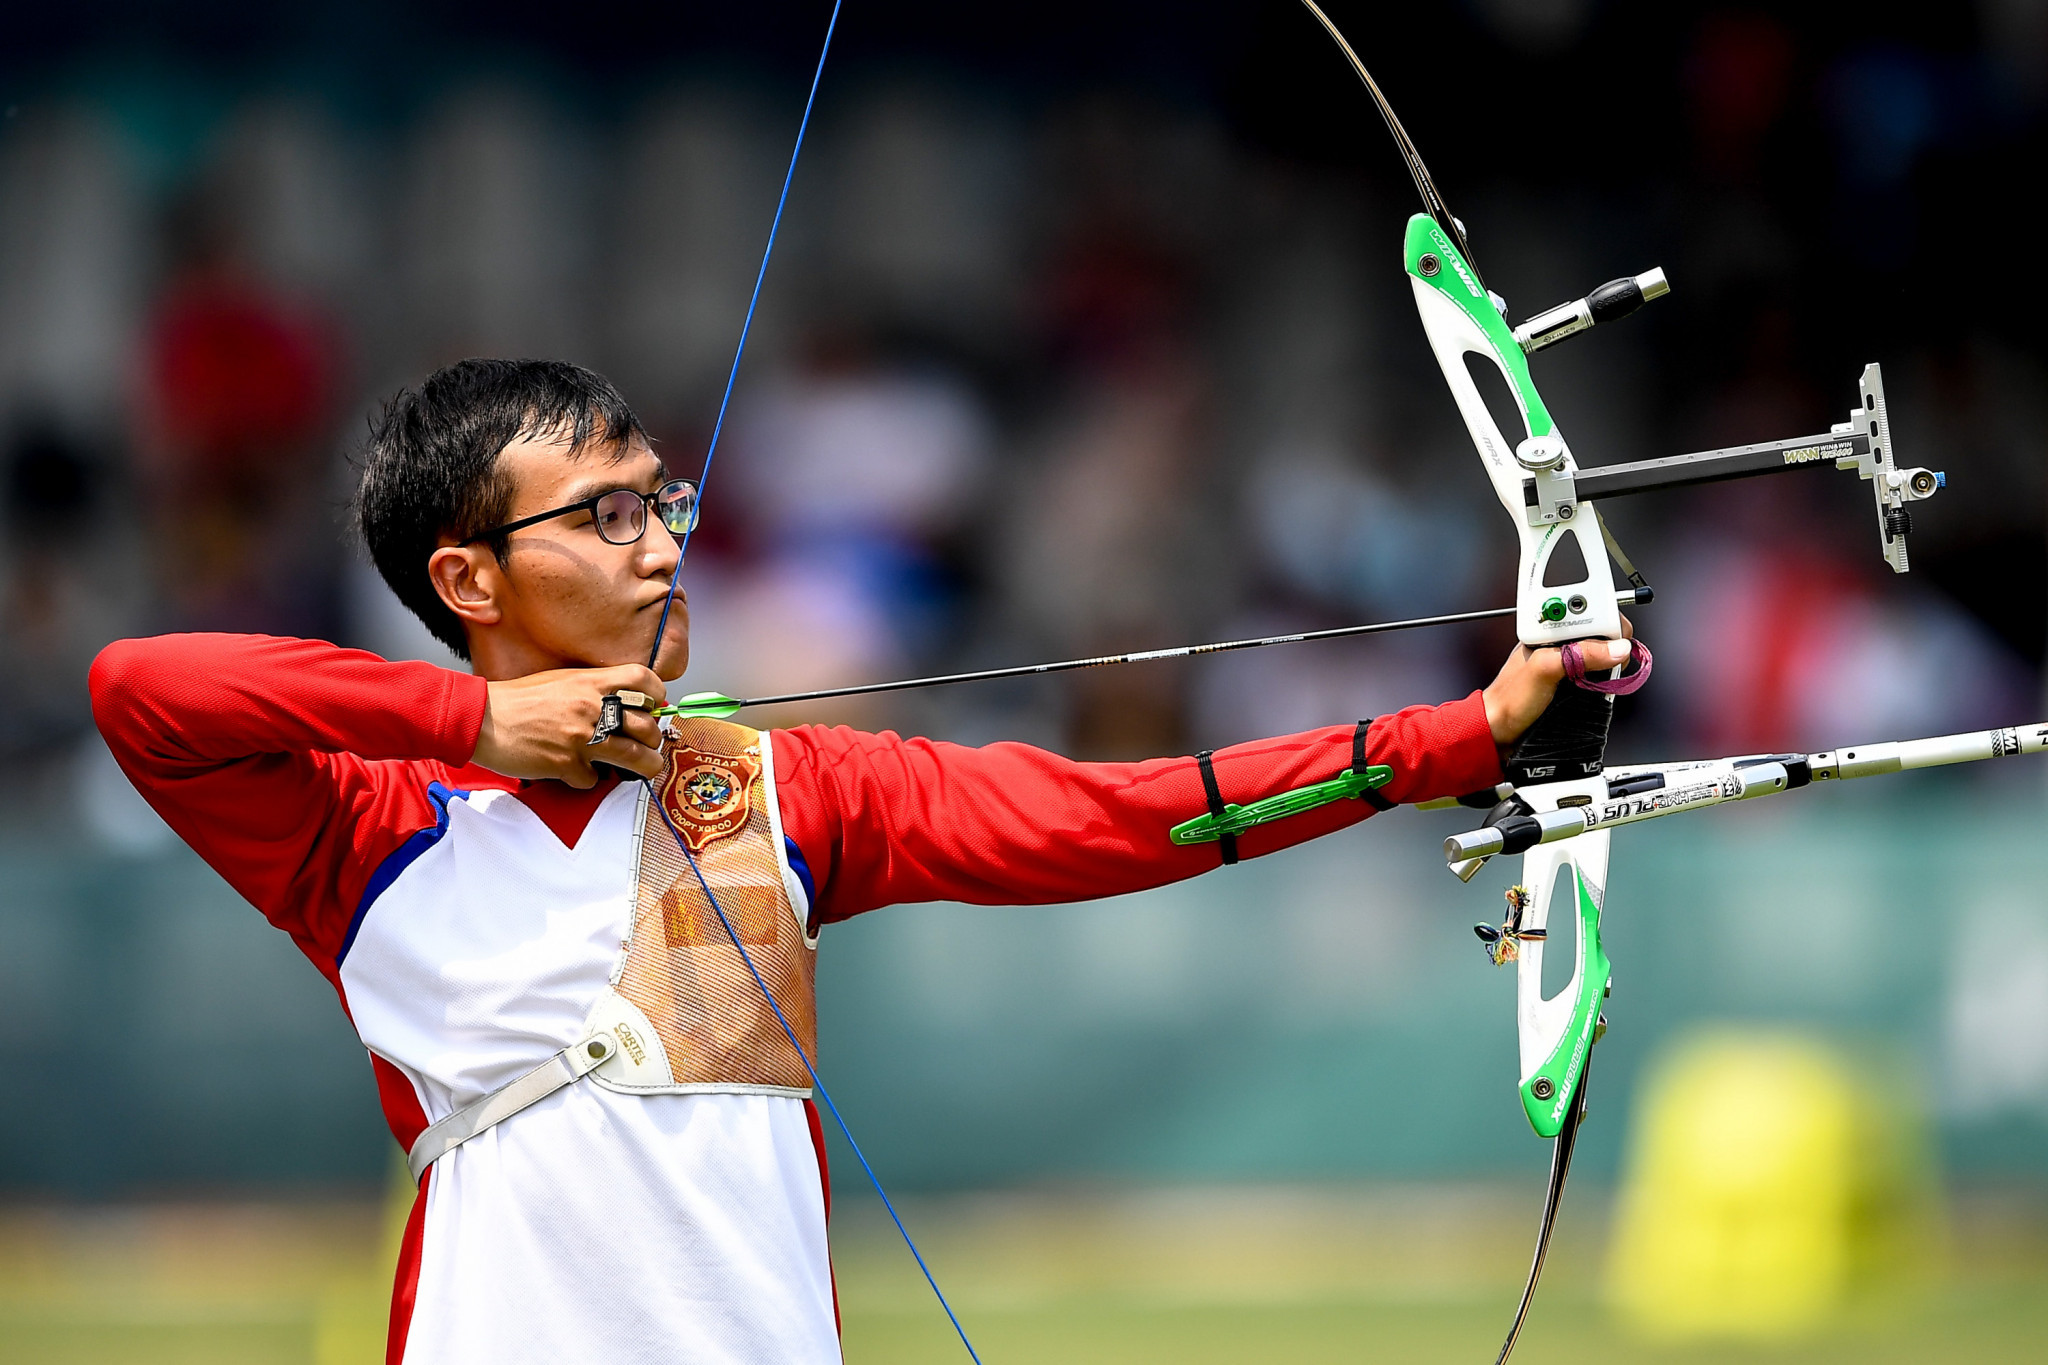 Mongolia's archery team cancels Olympic training camp due to coronavirus